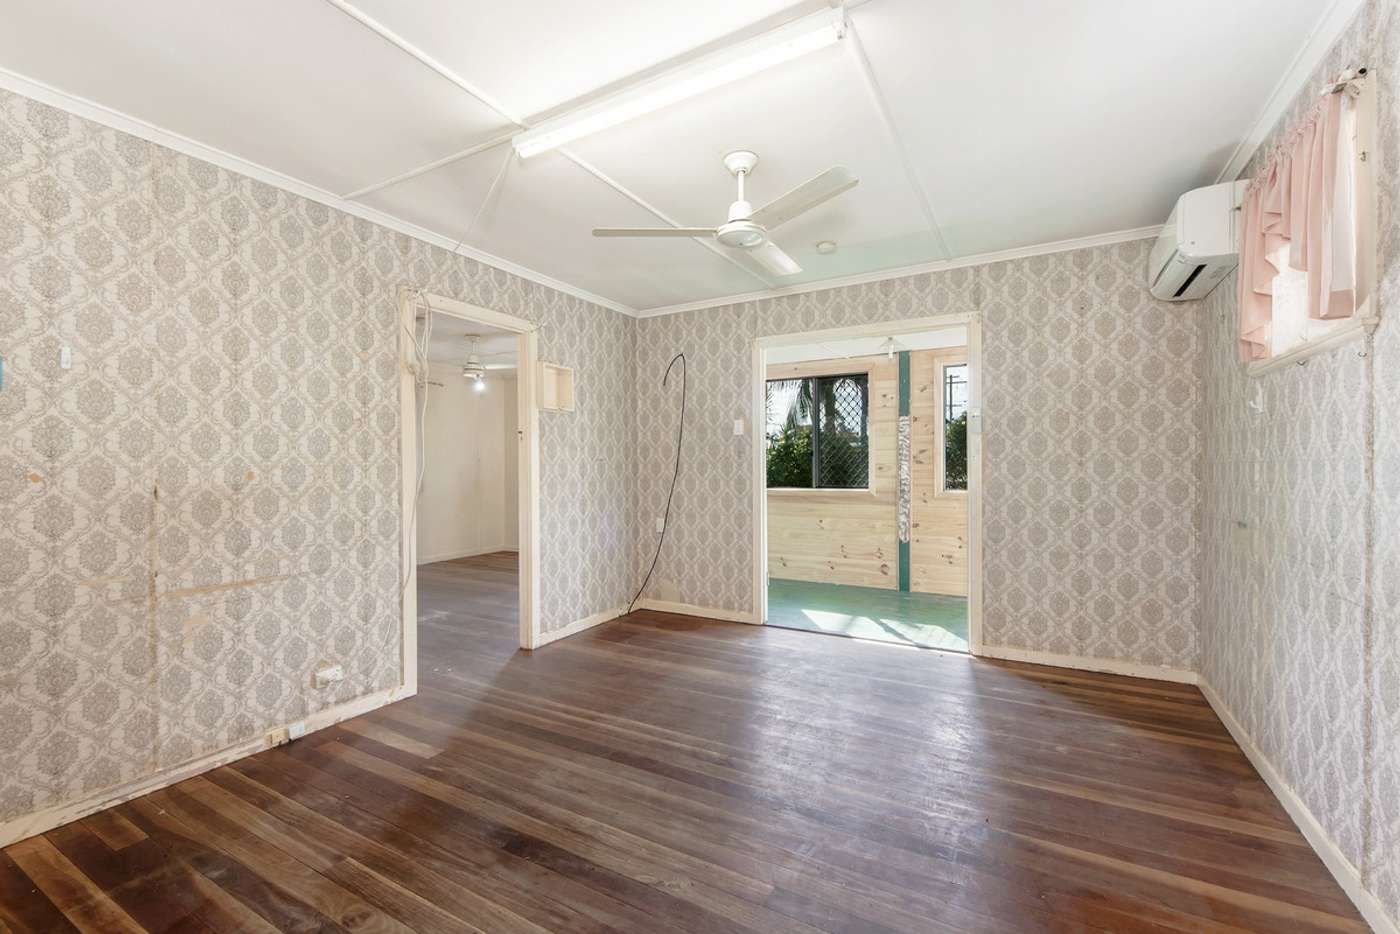 Fifth view of Homely house listing, 7 Morris Street, Silkstone QLD 4304